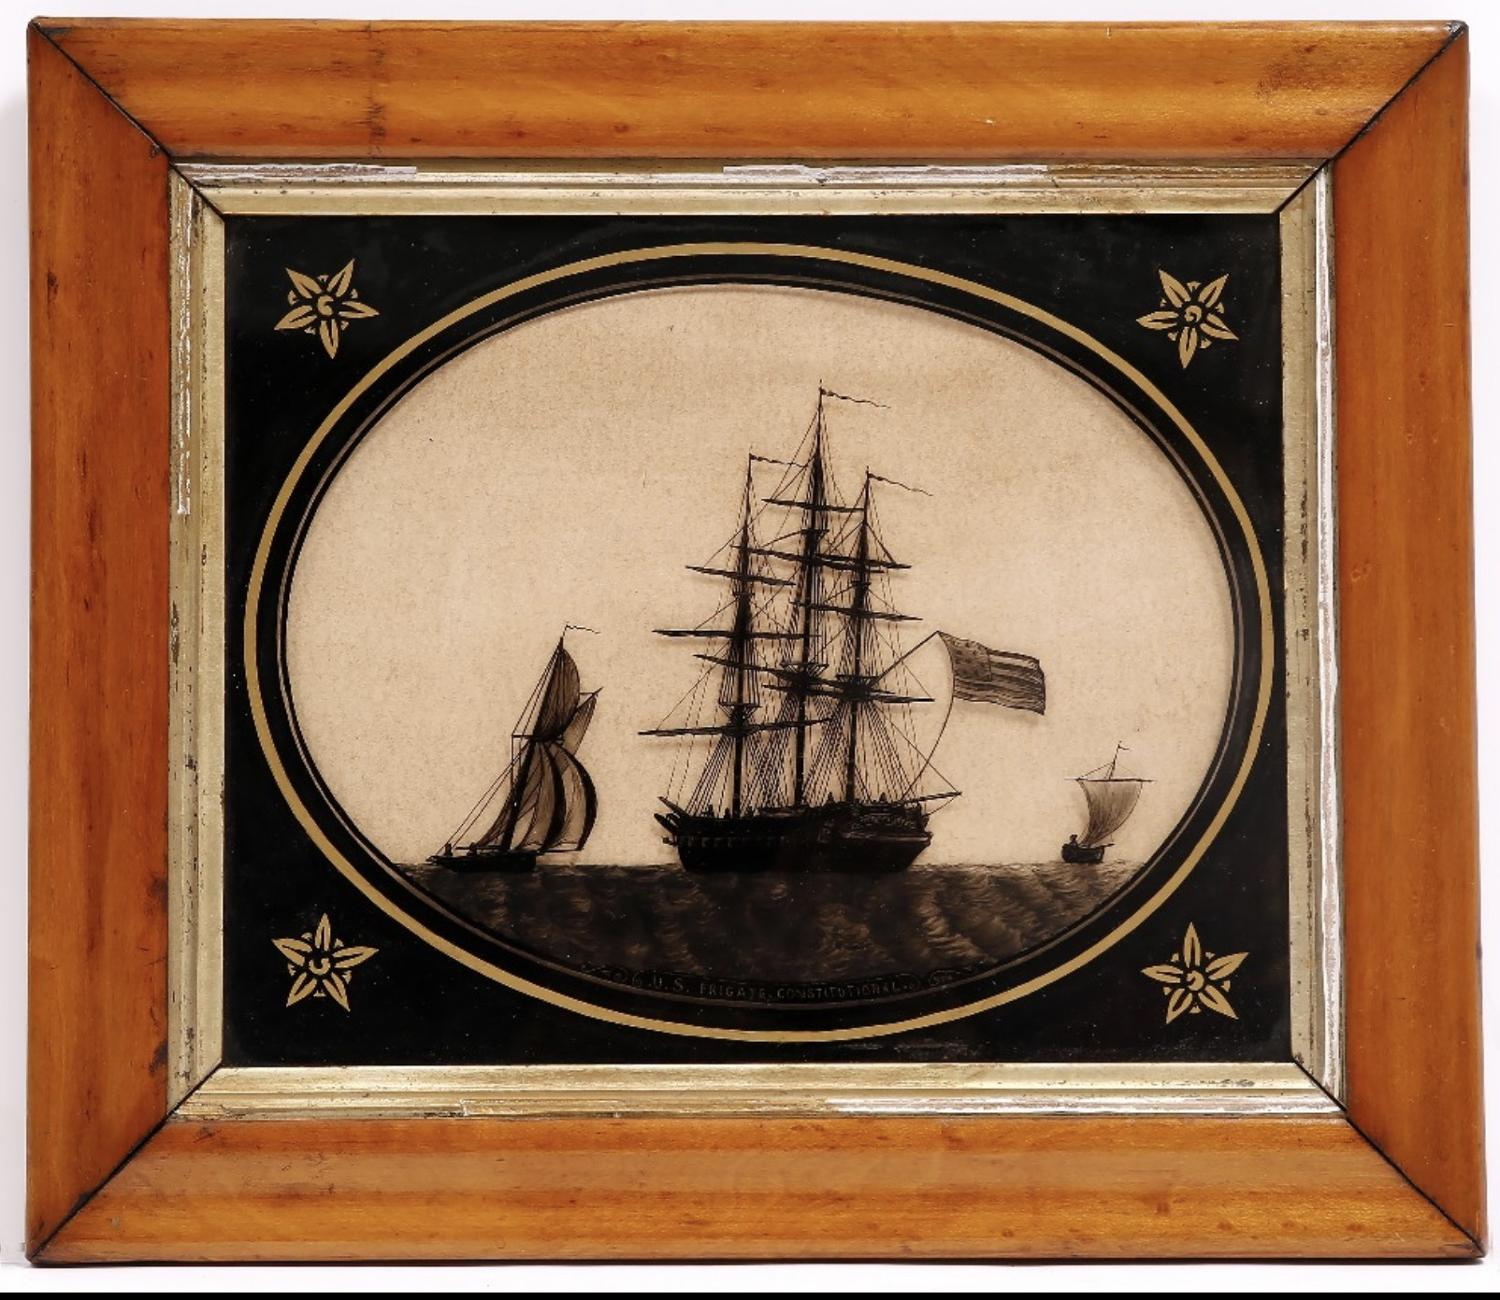 Early 19th Century Silhouettte ' U.S. Frigate Constitutional'